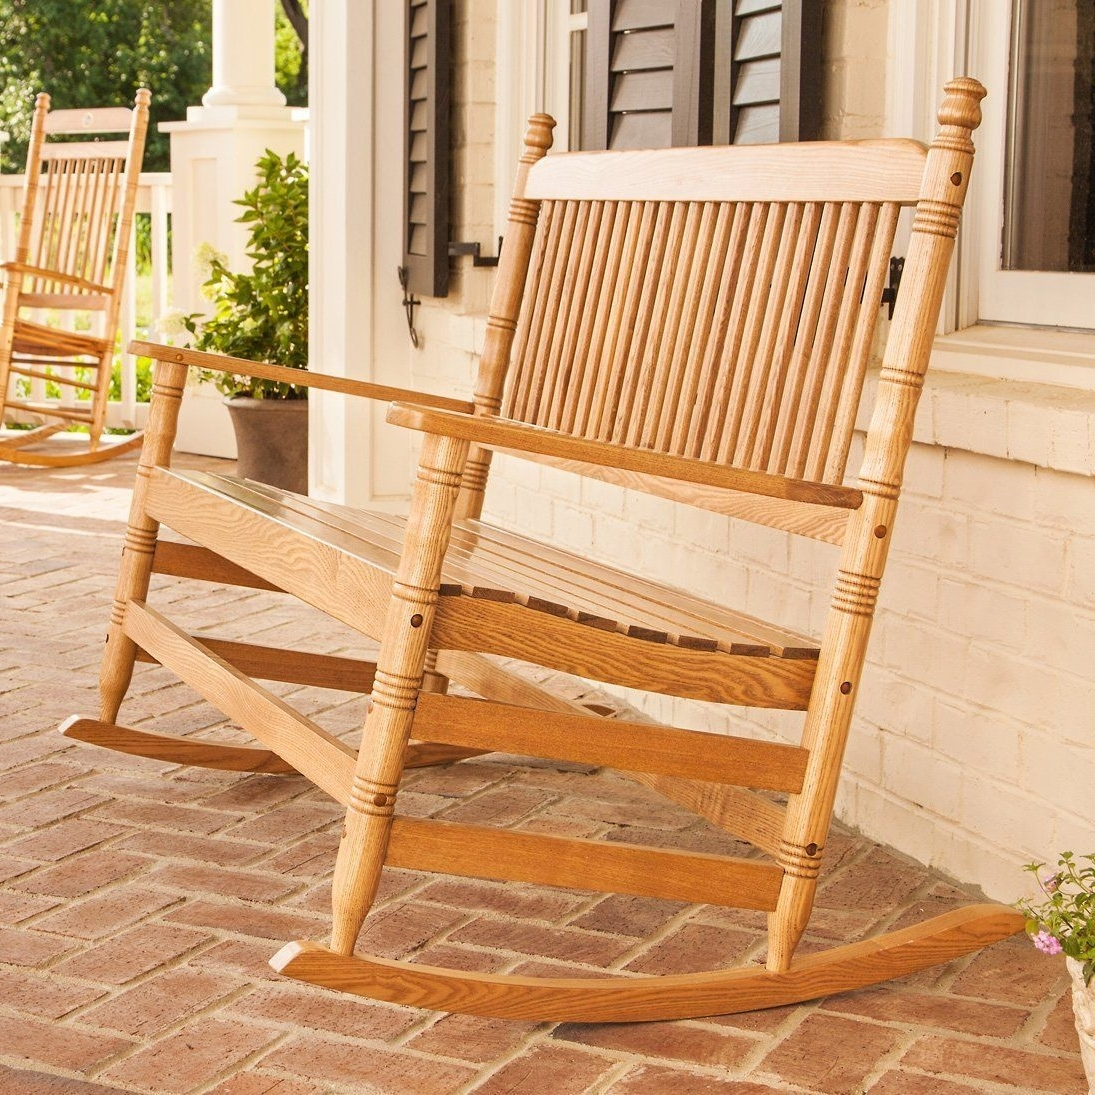 Trendy 4' Oak Double Rocking Chair – From Cracker Barrel – I Need This On With Regard To Rocking Chairs At Cracker Barrel (View 12 of 15)